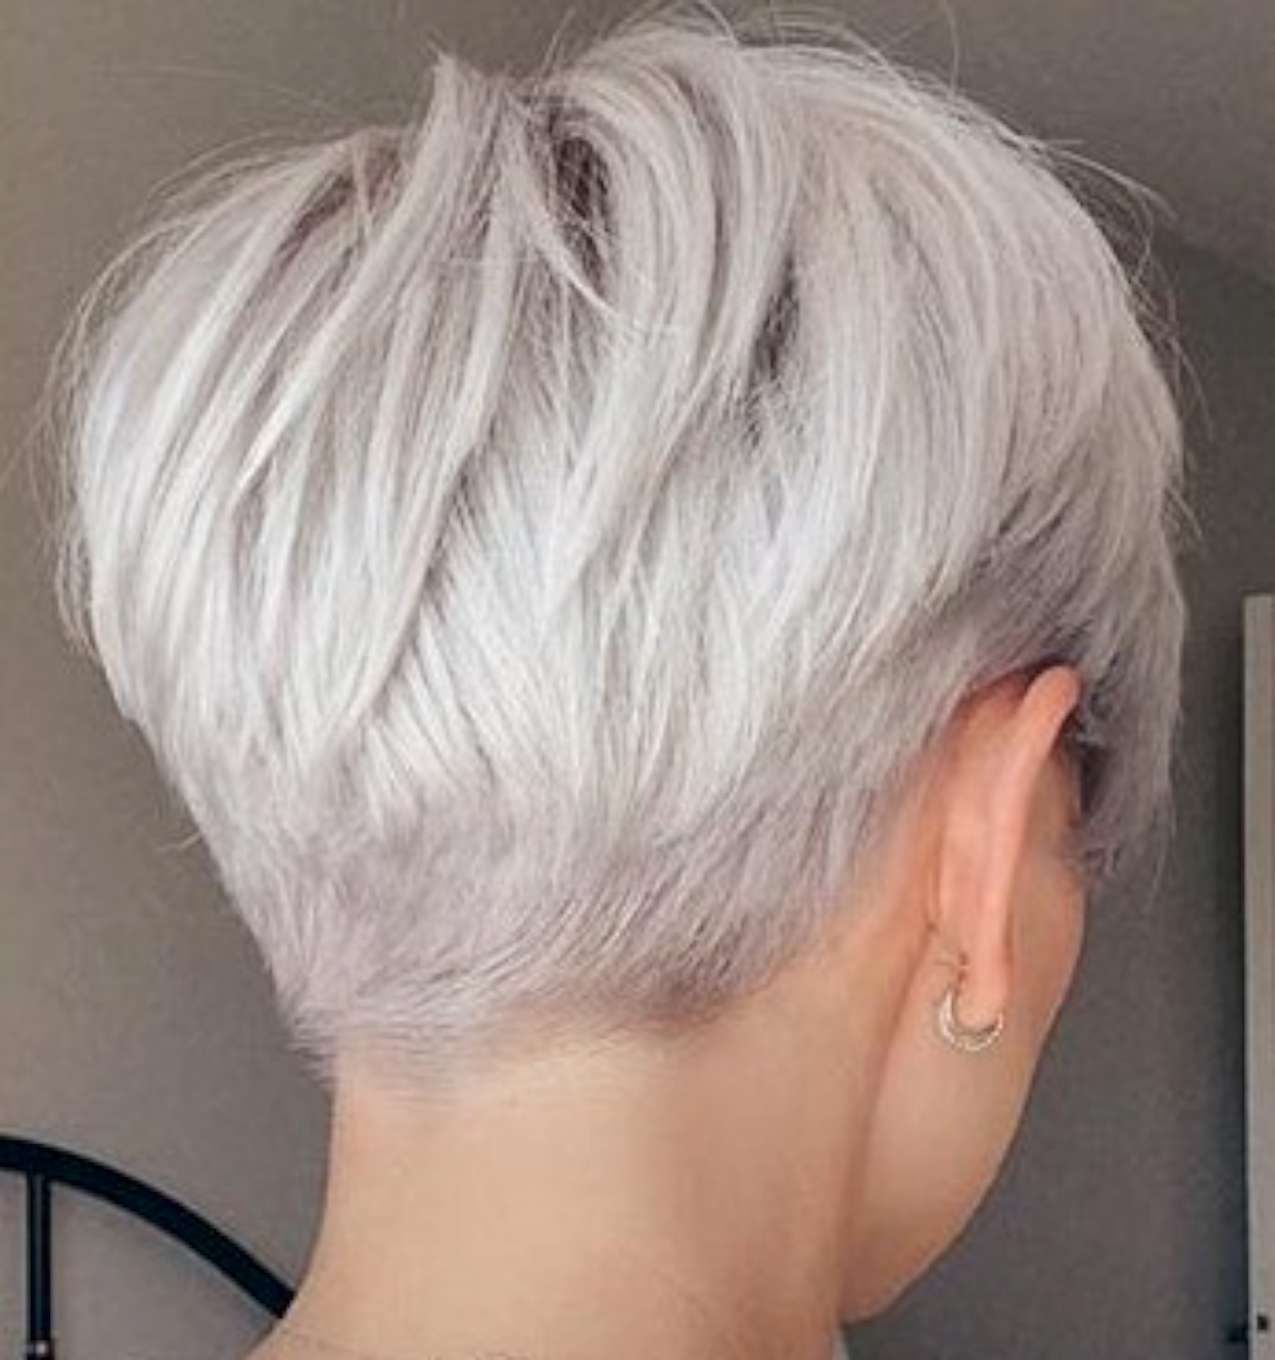 50+ Attractive Short Hairstyles for Women Over 60 (Updated 2021) 887a4898c5f812a895480cd0199957e3